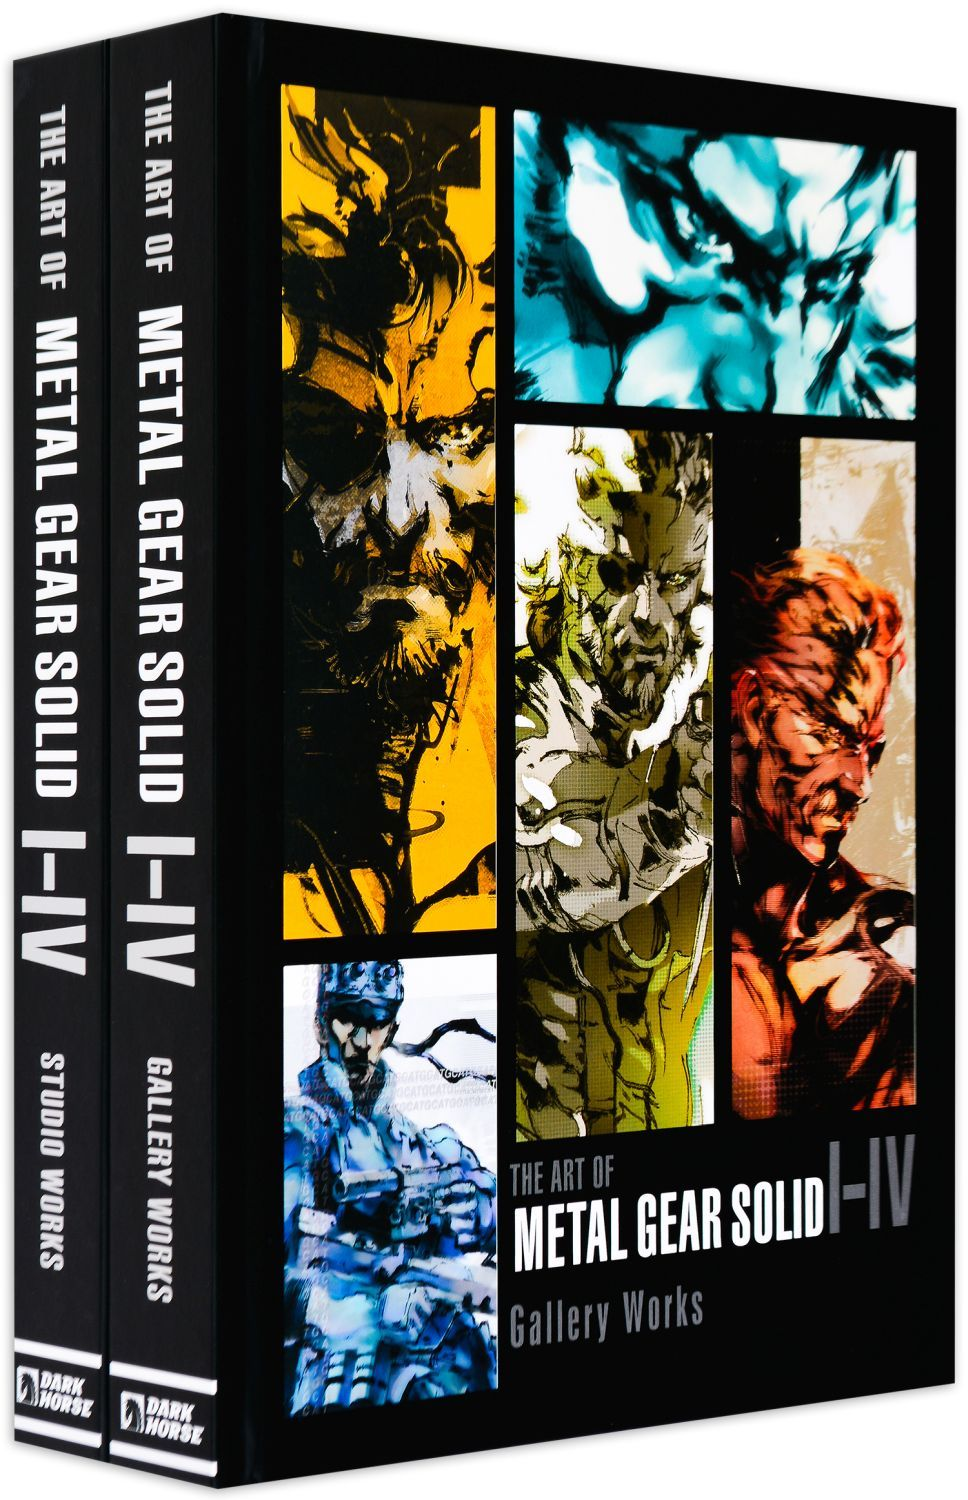 The Art of Metal Gear Solid I-IV (Collectable slipcase Hardcover) - 5